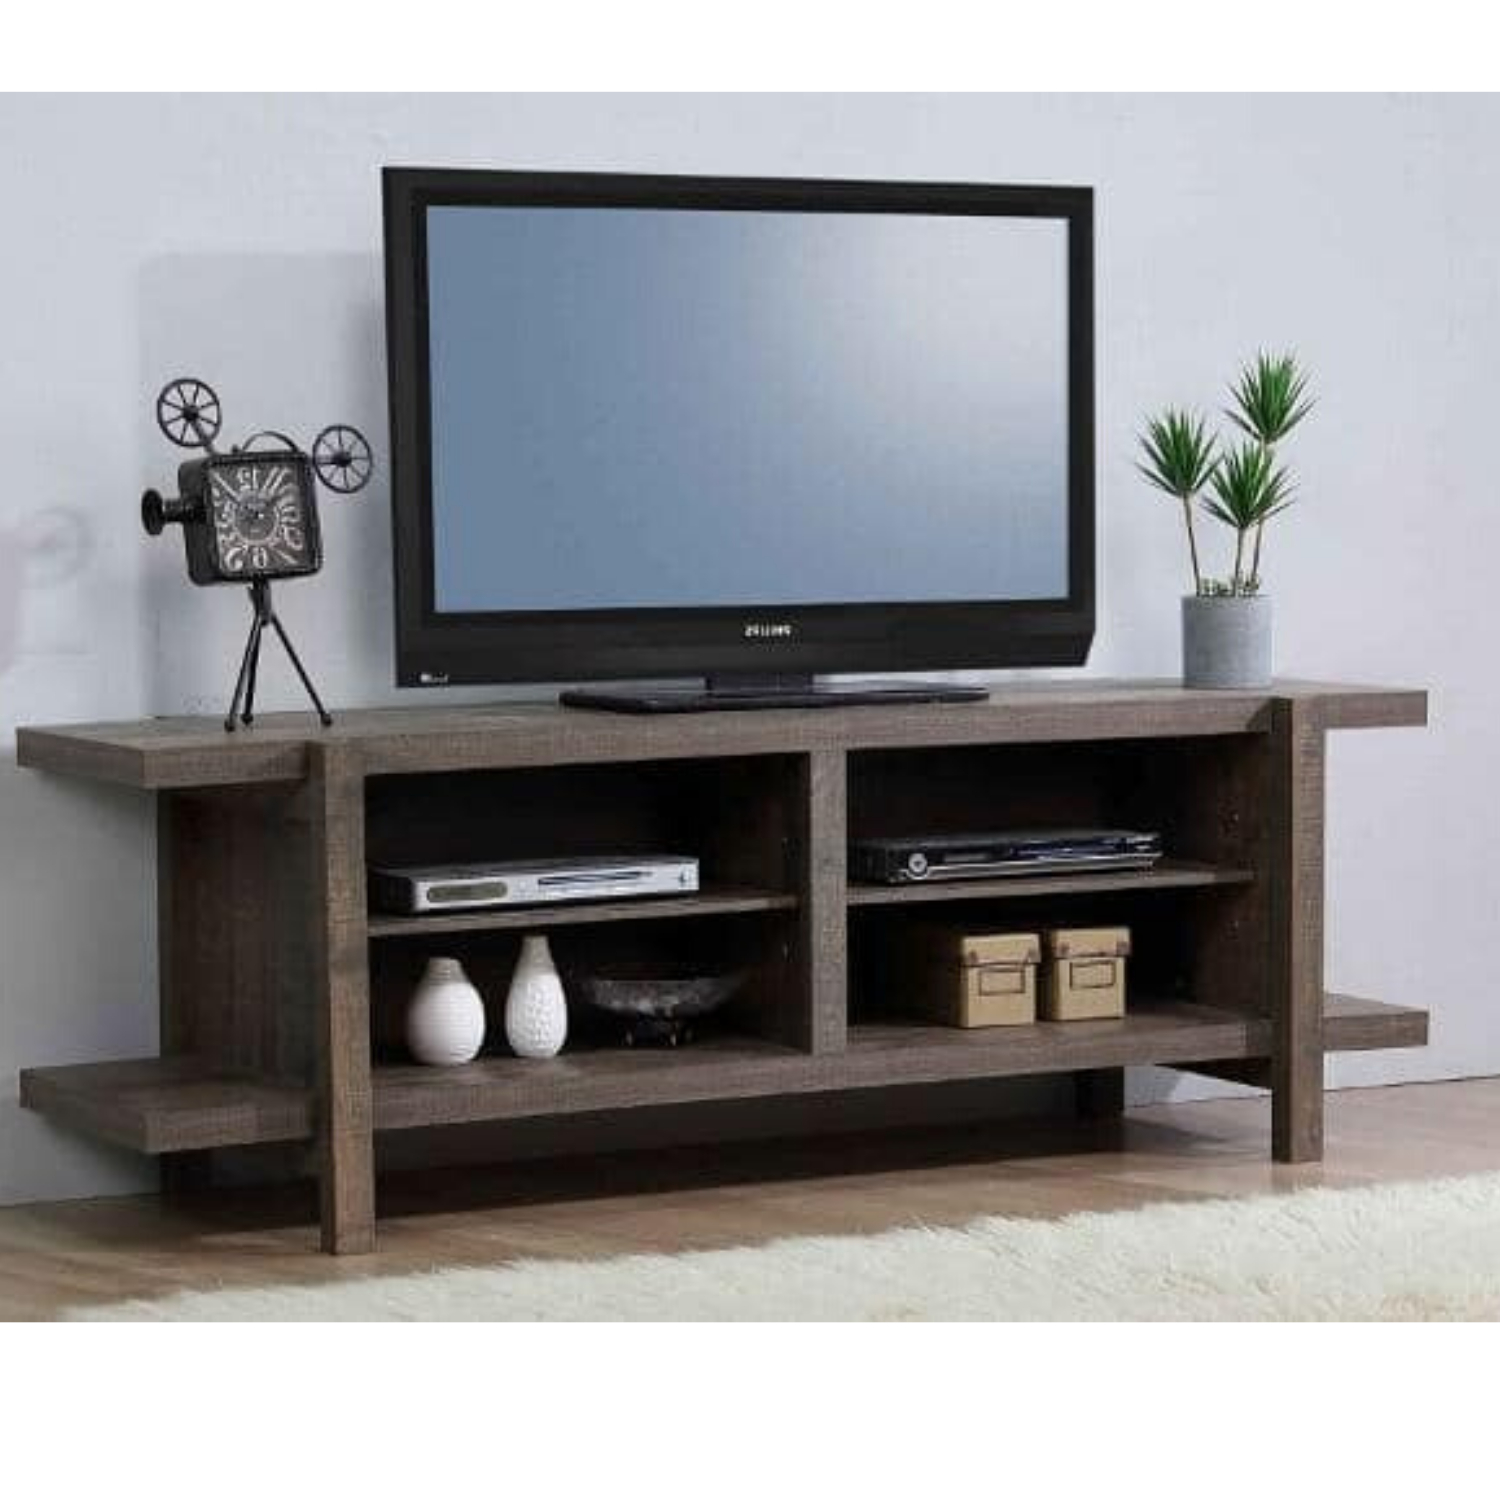 """Tammy 65'' Tv Stand For Tvs Up To 70'', Rustic Mdf Wood Tv In Neilsen Tv Stands For Tvs Up To 65"""" (View 8 of 20)"""